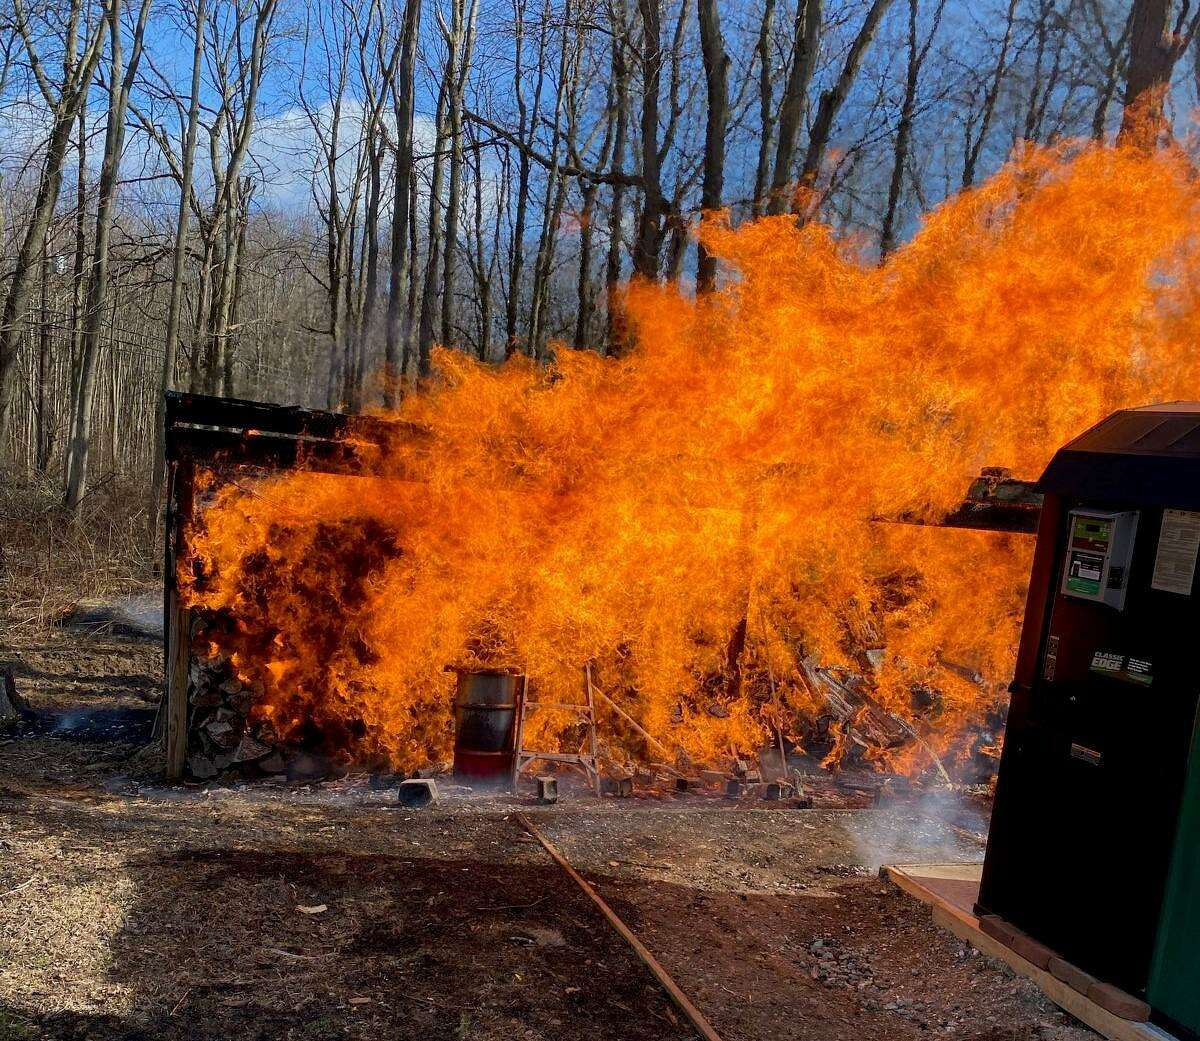 Shelton firefighters doused a shed fire on a Beverly Lane property on Saturday, Jan. 23.